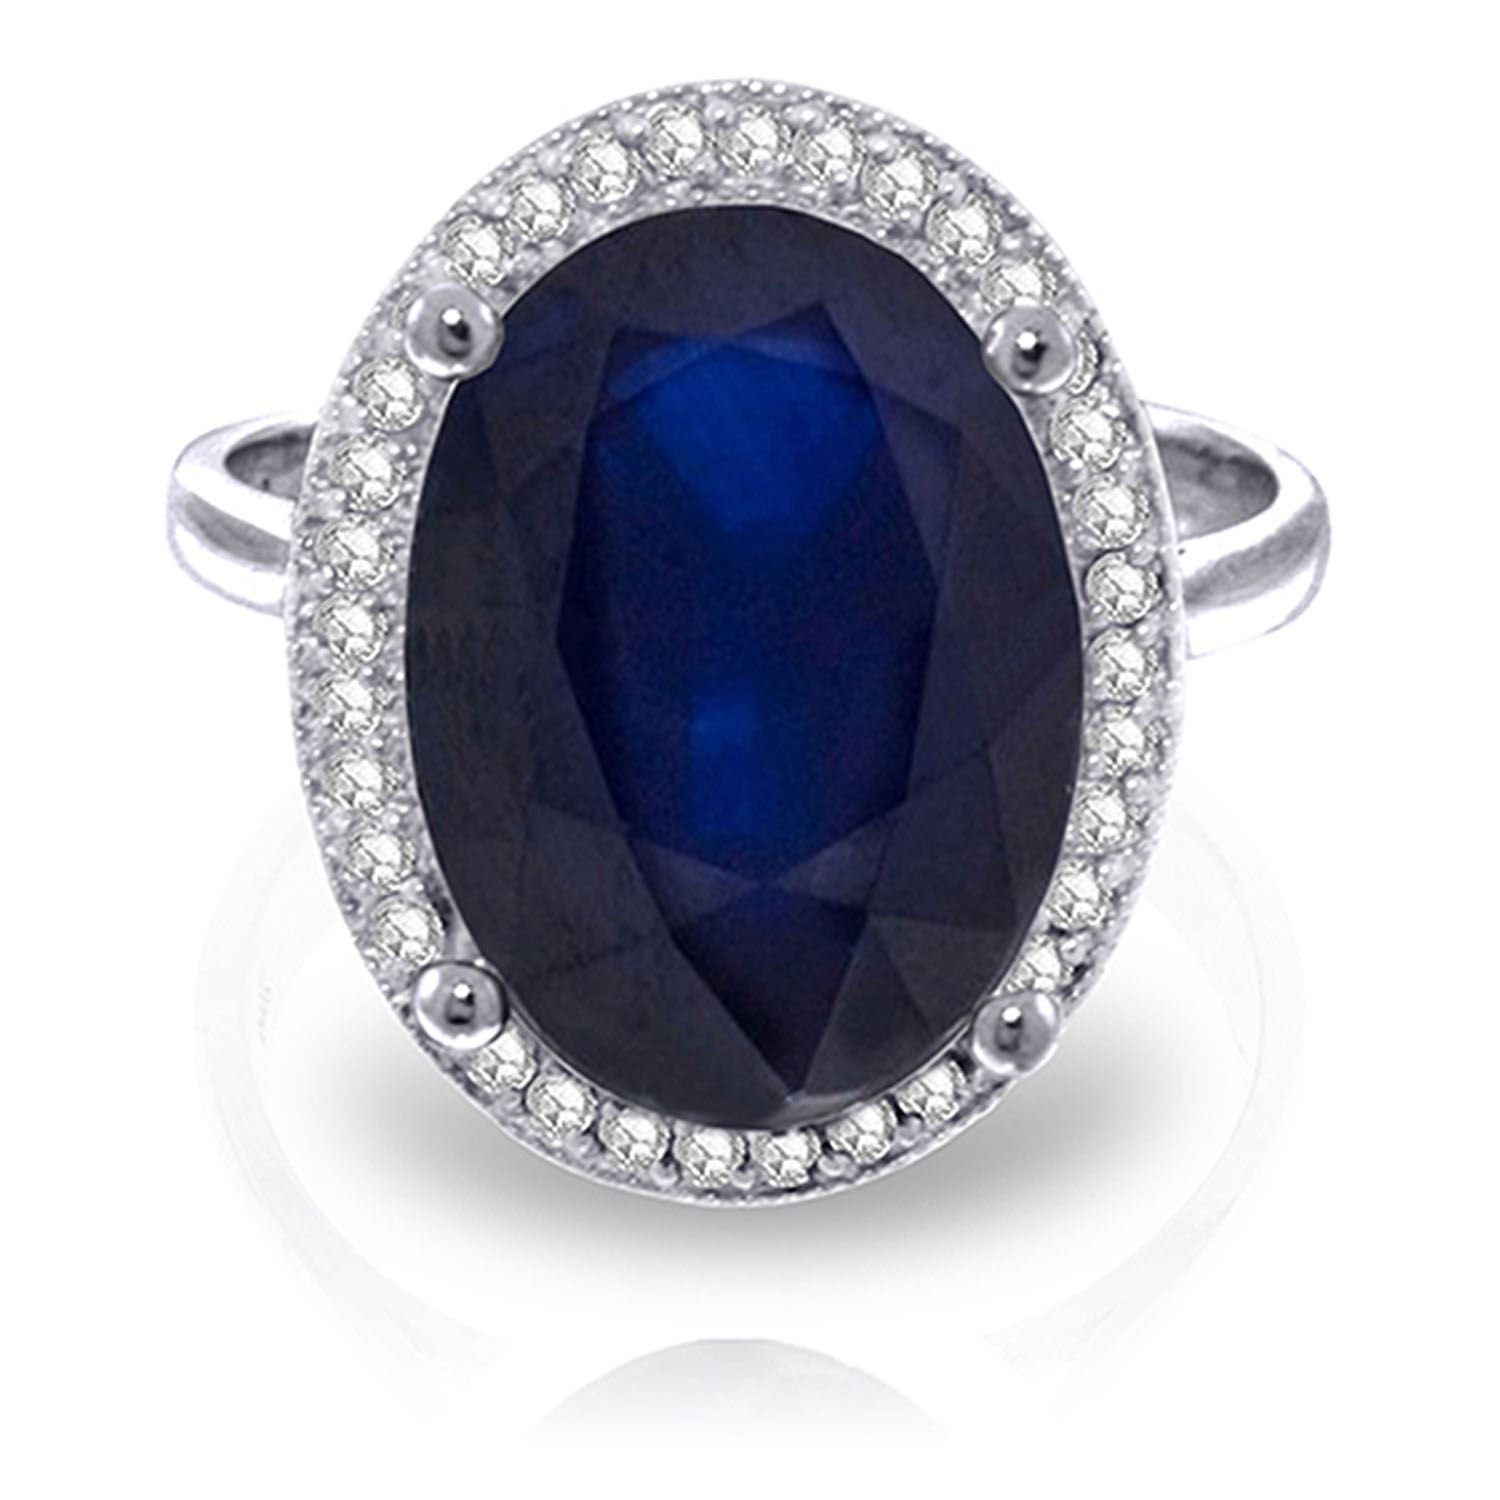 ALARRI 6.58 Carat 14K Solid White Gold Love Is Generous Sapphire Diamond Ring With Ring Size 6 by ALARRI (Image #4)